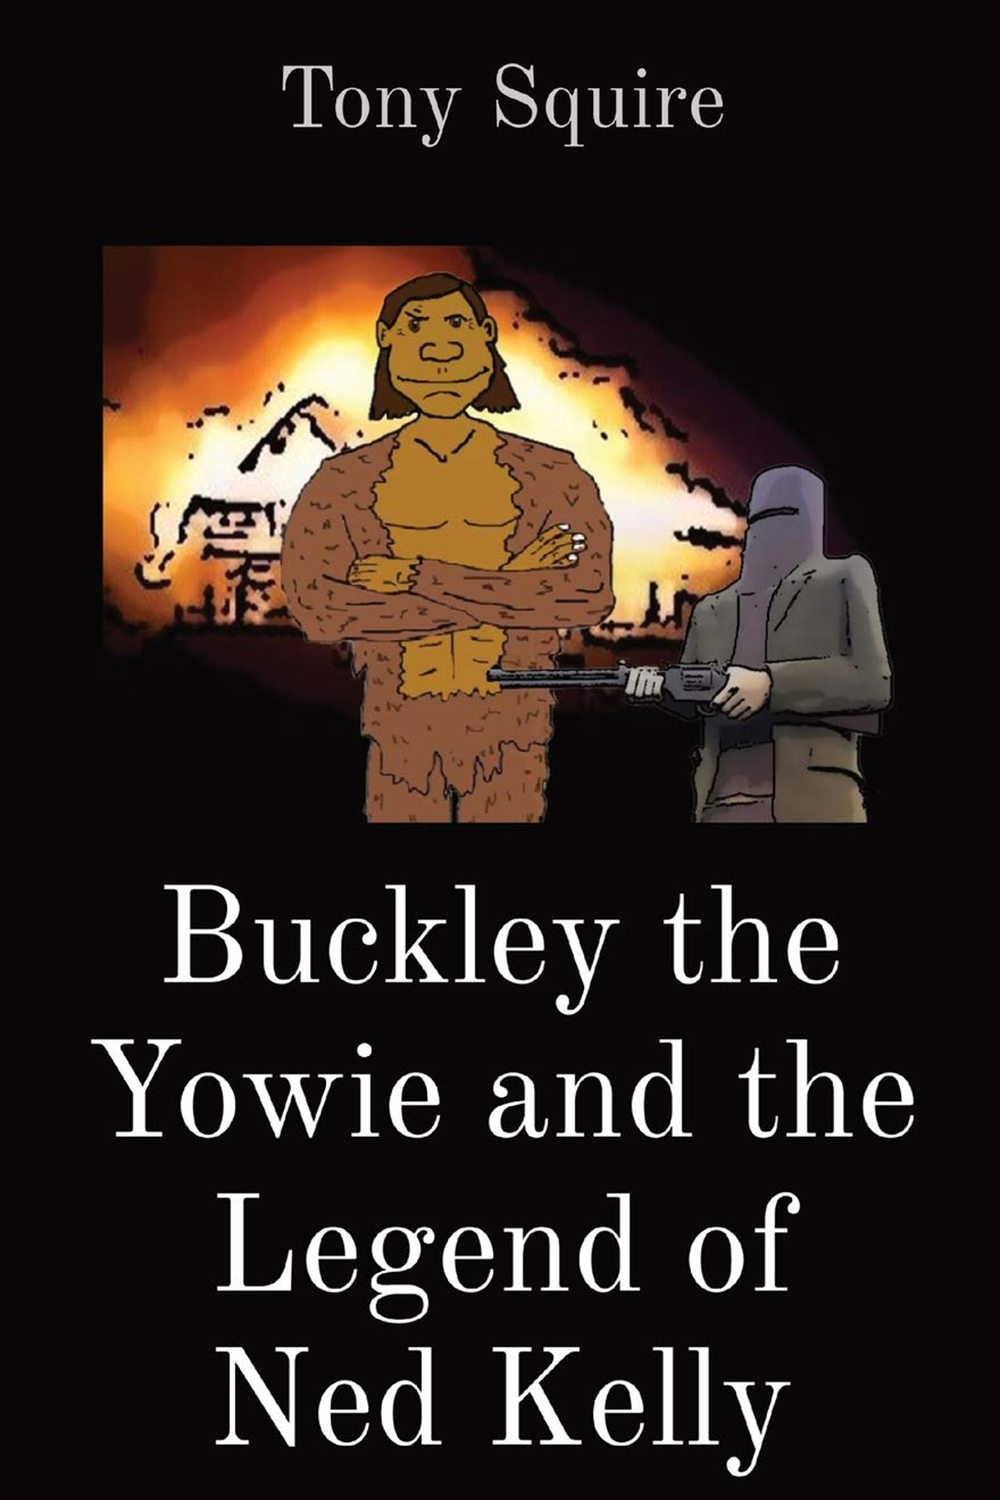 Buckley the Yowie and the Legend of Ned Kelly by Tony Squire